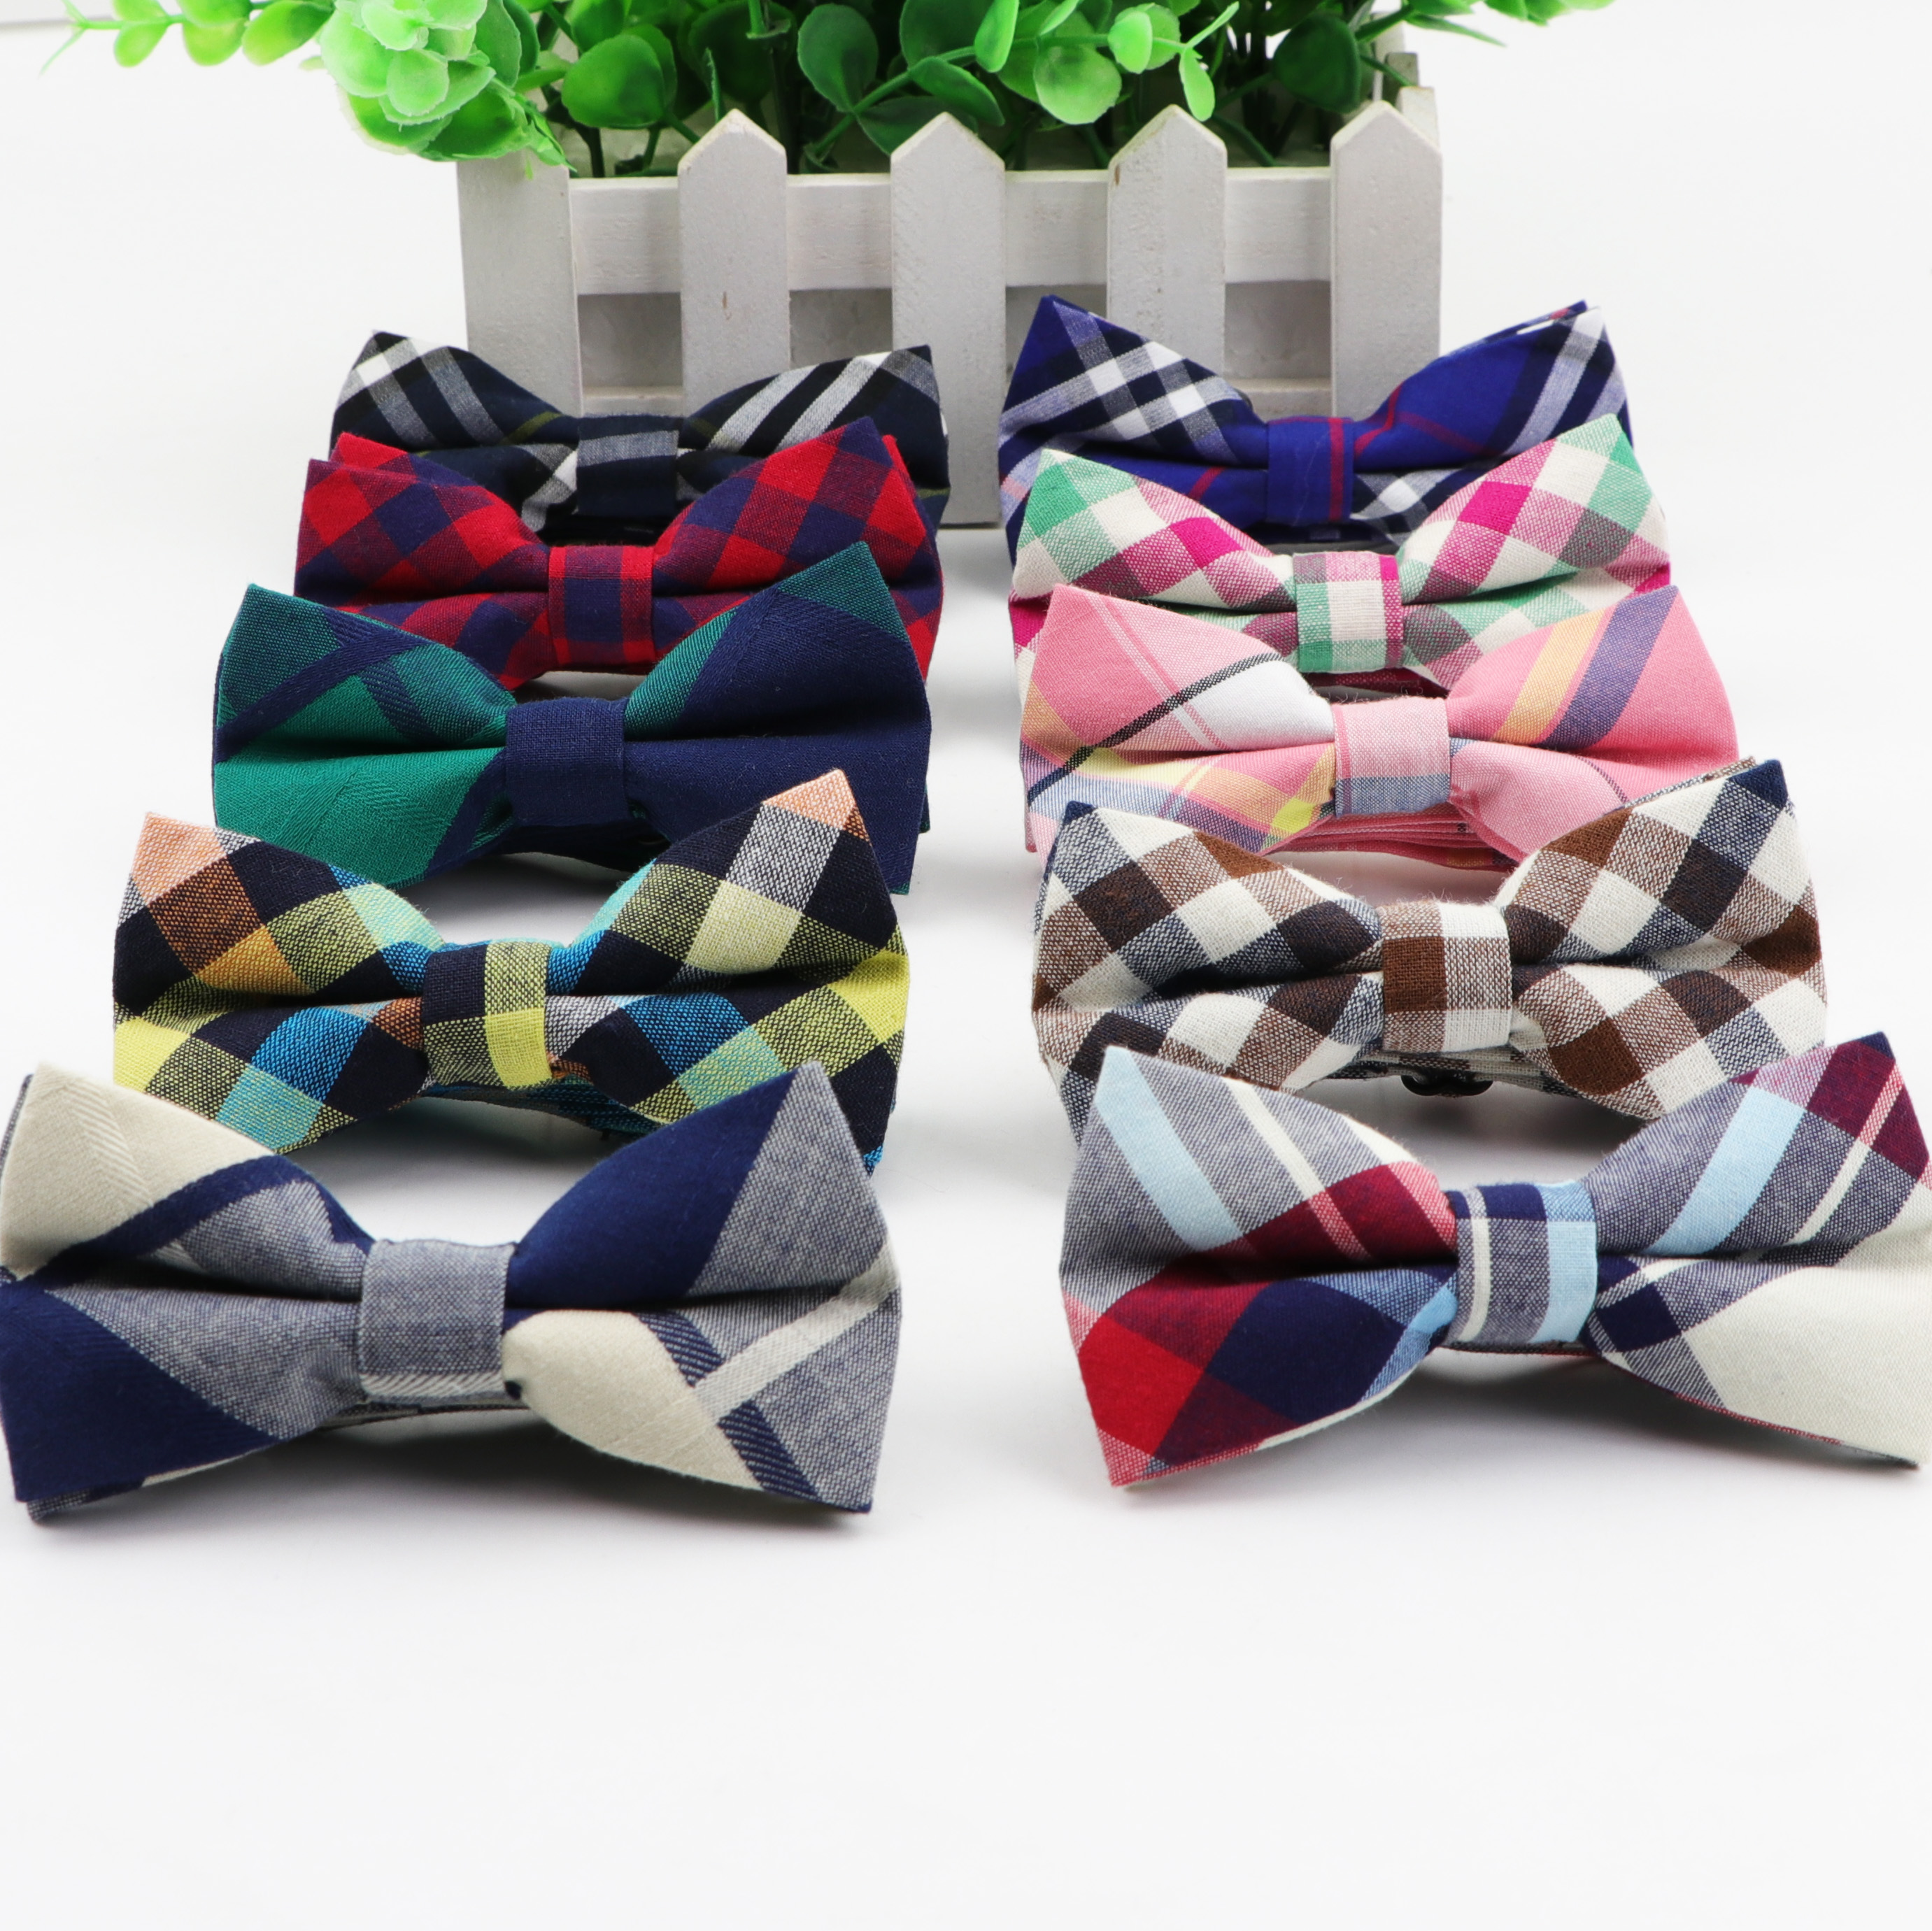 Classic Kid Suit Bowties Baby Boy's Baby Striped Butterfly Fashion Cotton Adjustable Bowtie Children Two Tone Bow Tie